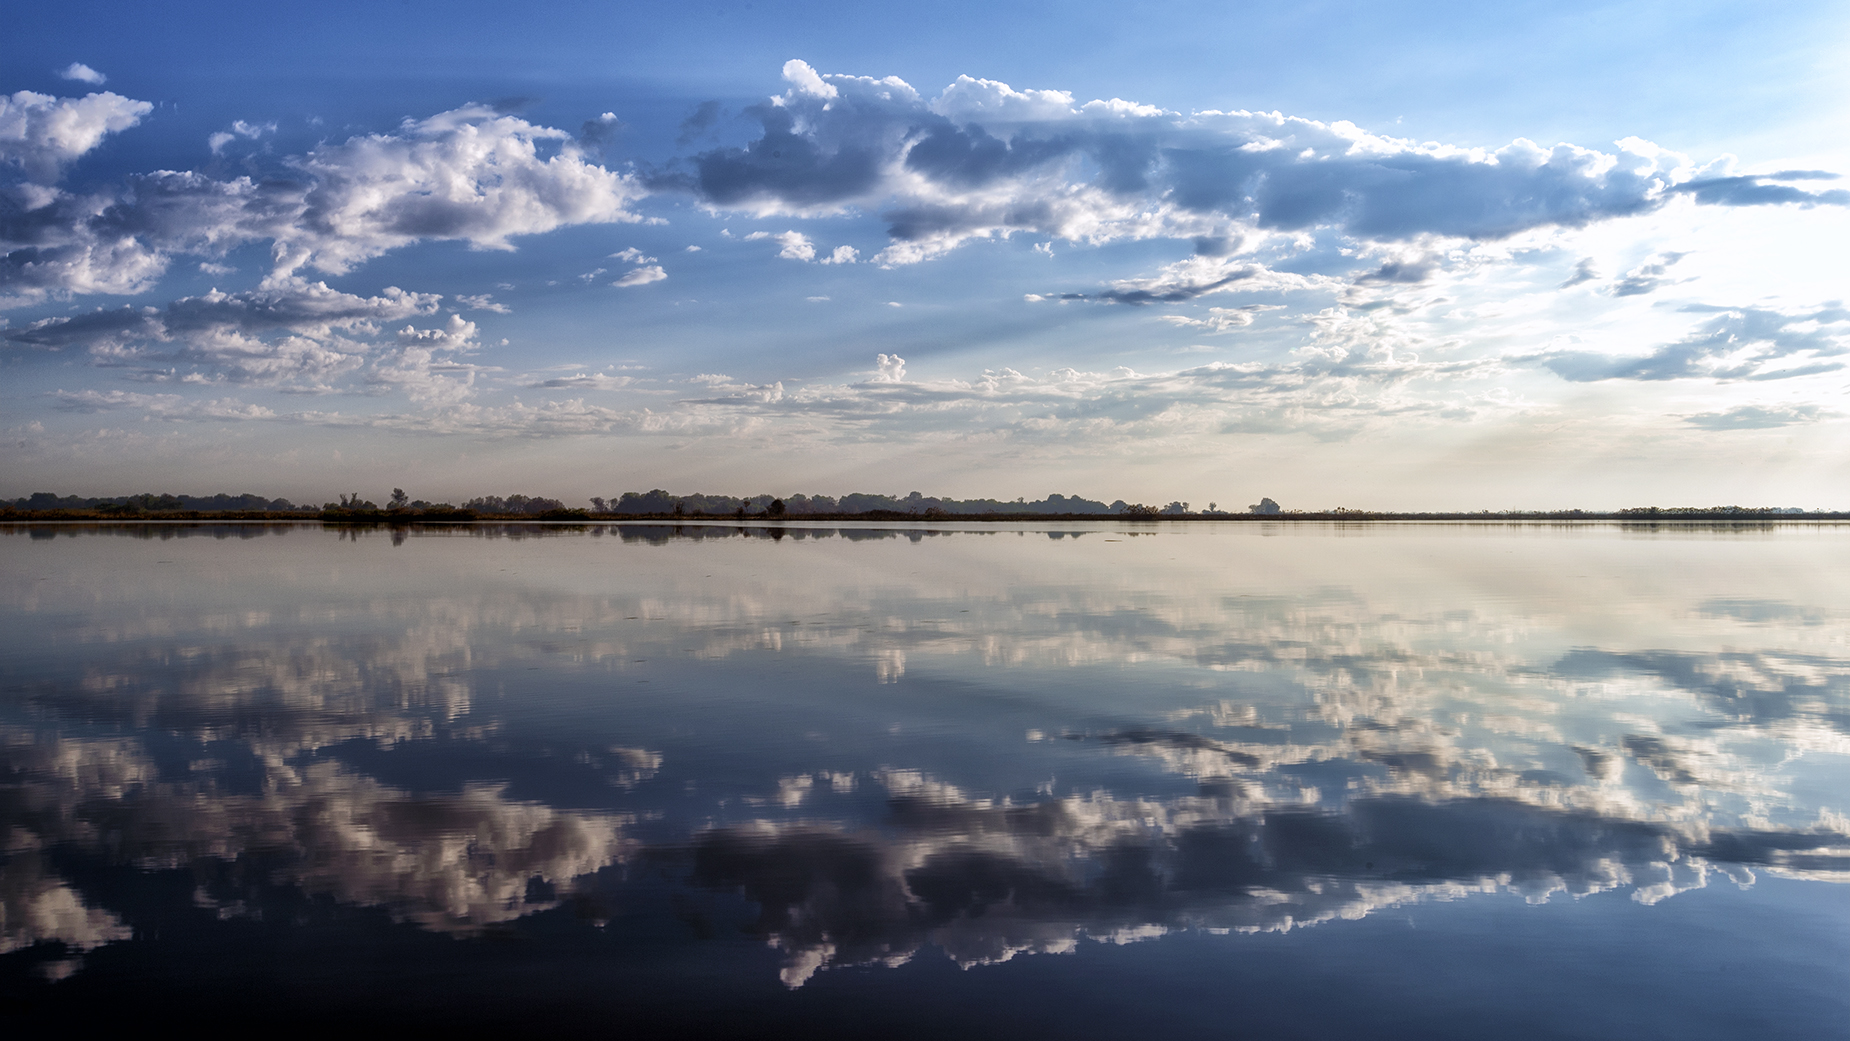 Okavango_Delta_Reflection_3